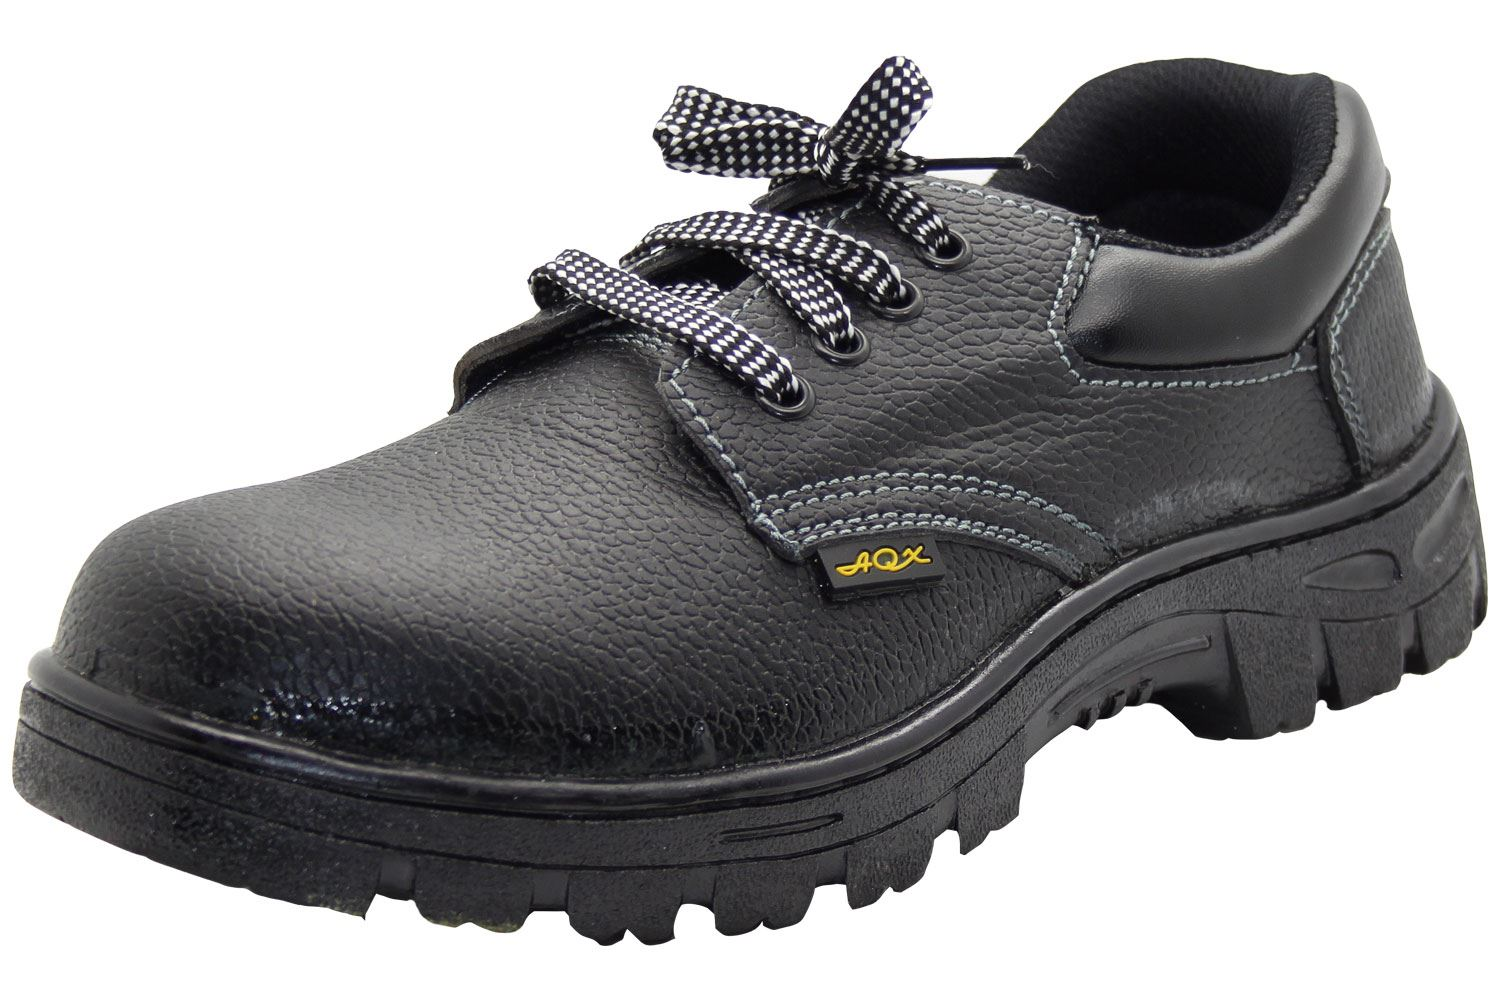 new mens safety trainers work steel toe cap leather suede. Black Bedroom Furniture Sets. Home Design Ideas